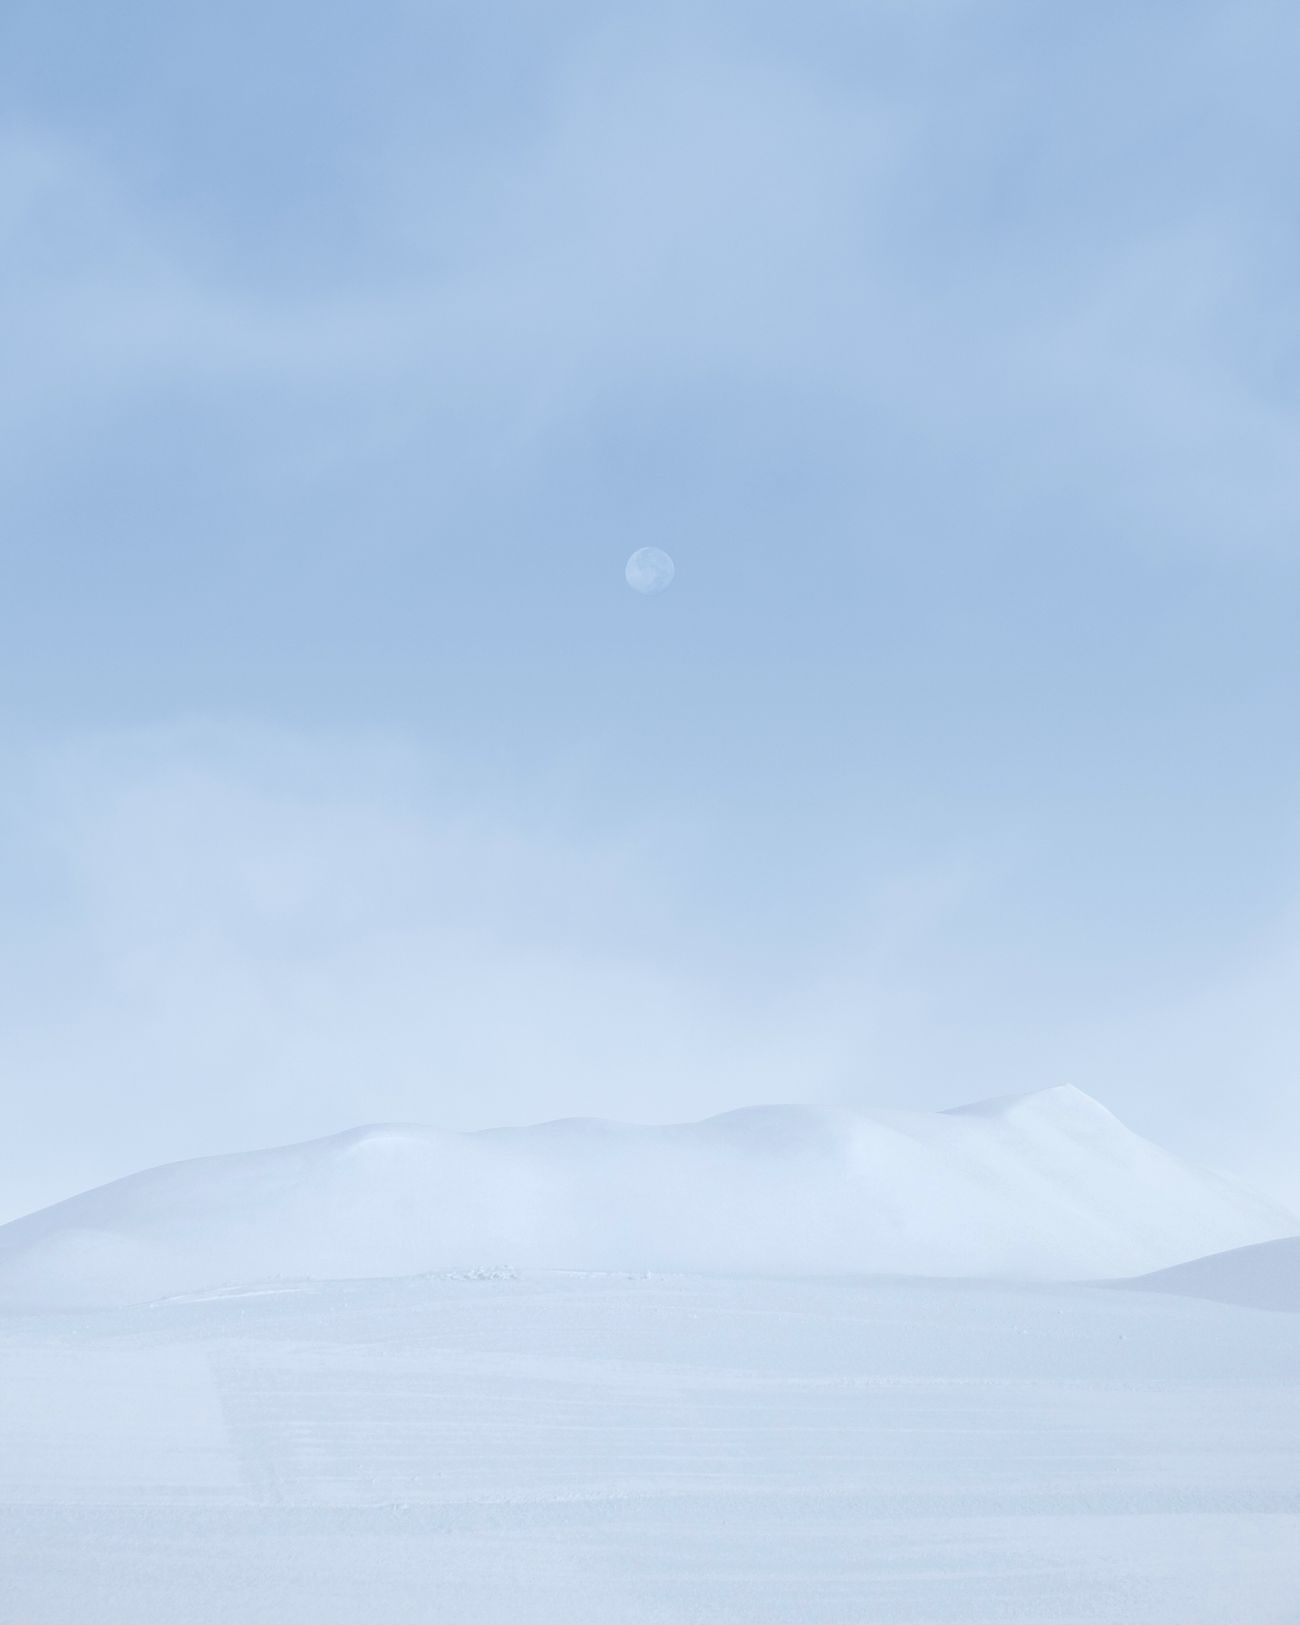 moon, no people, snow, nature, cold temperature